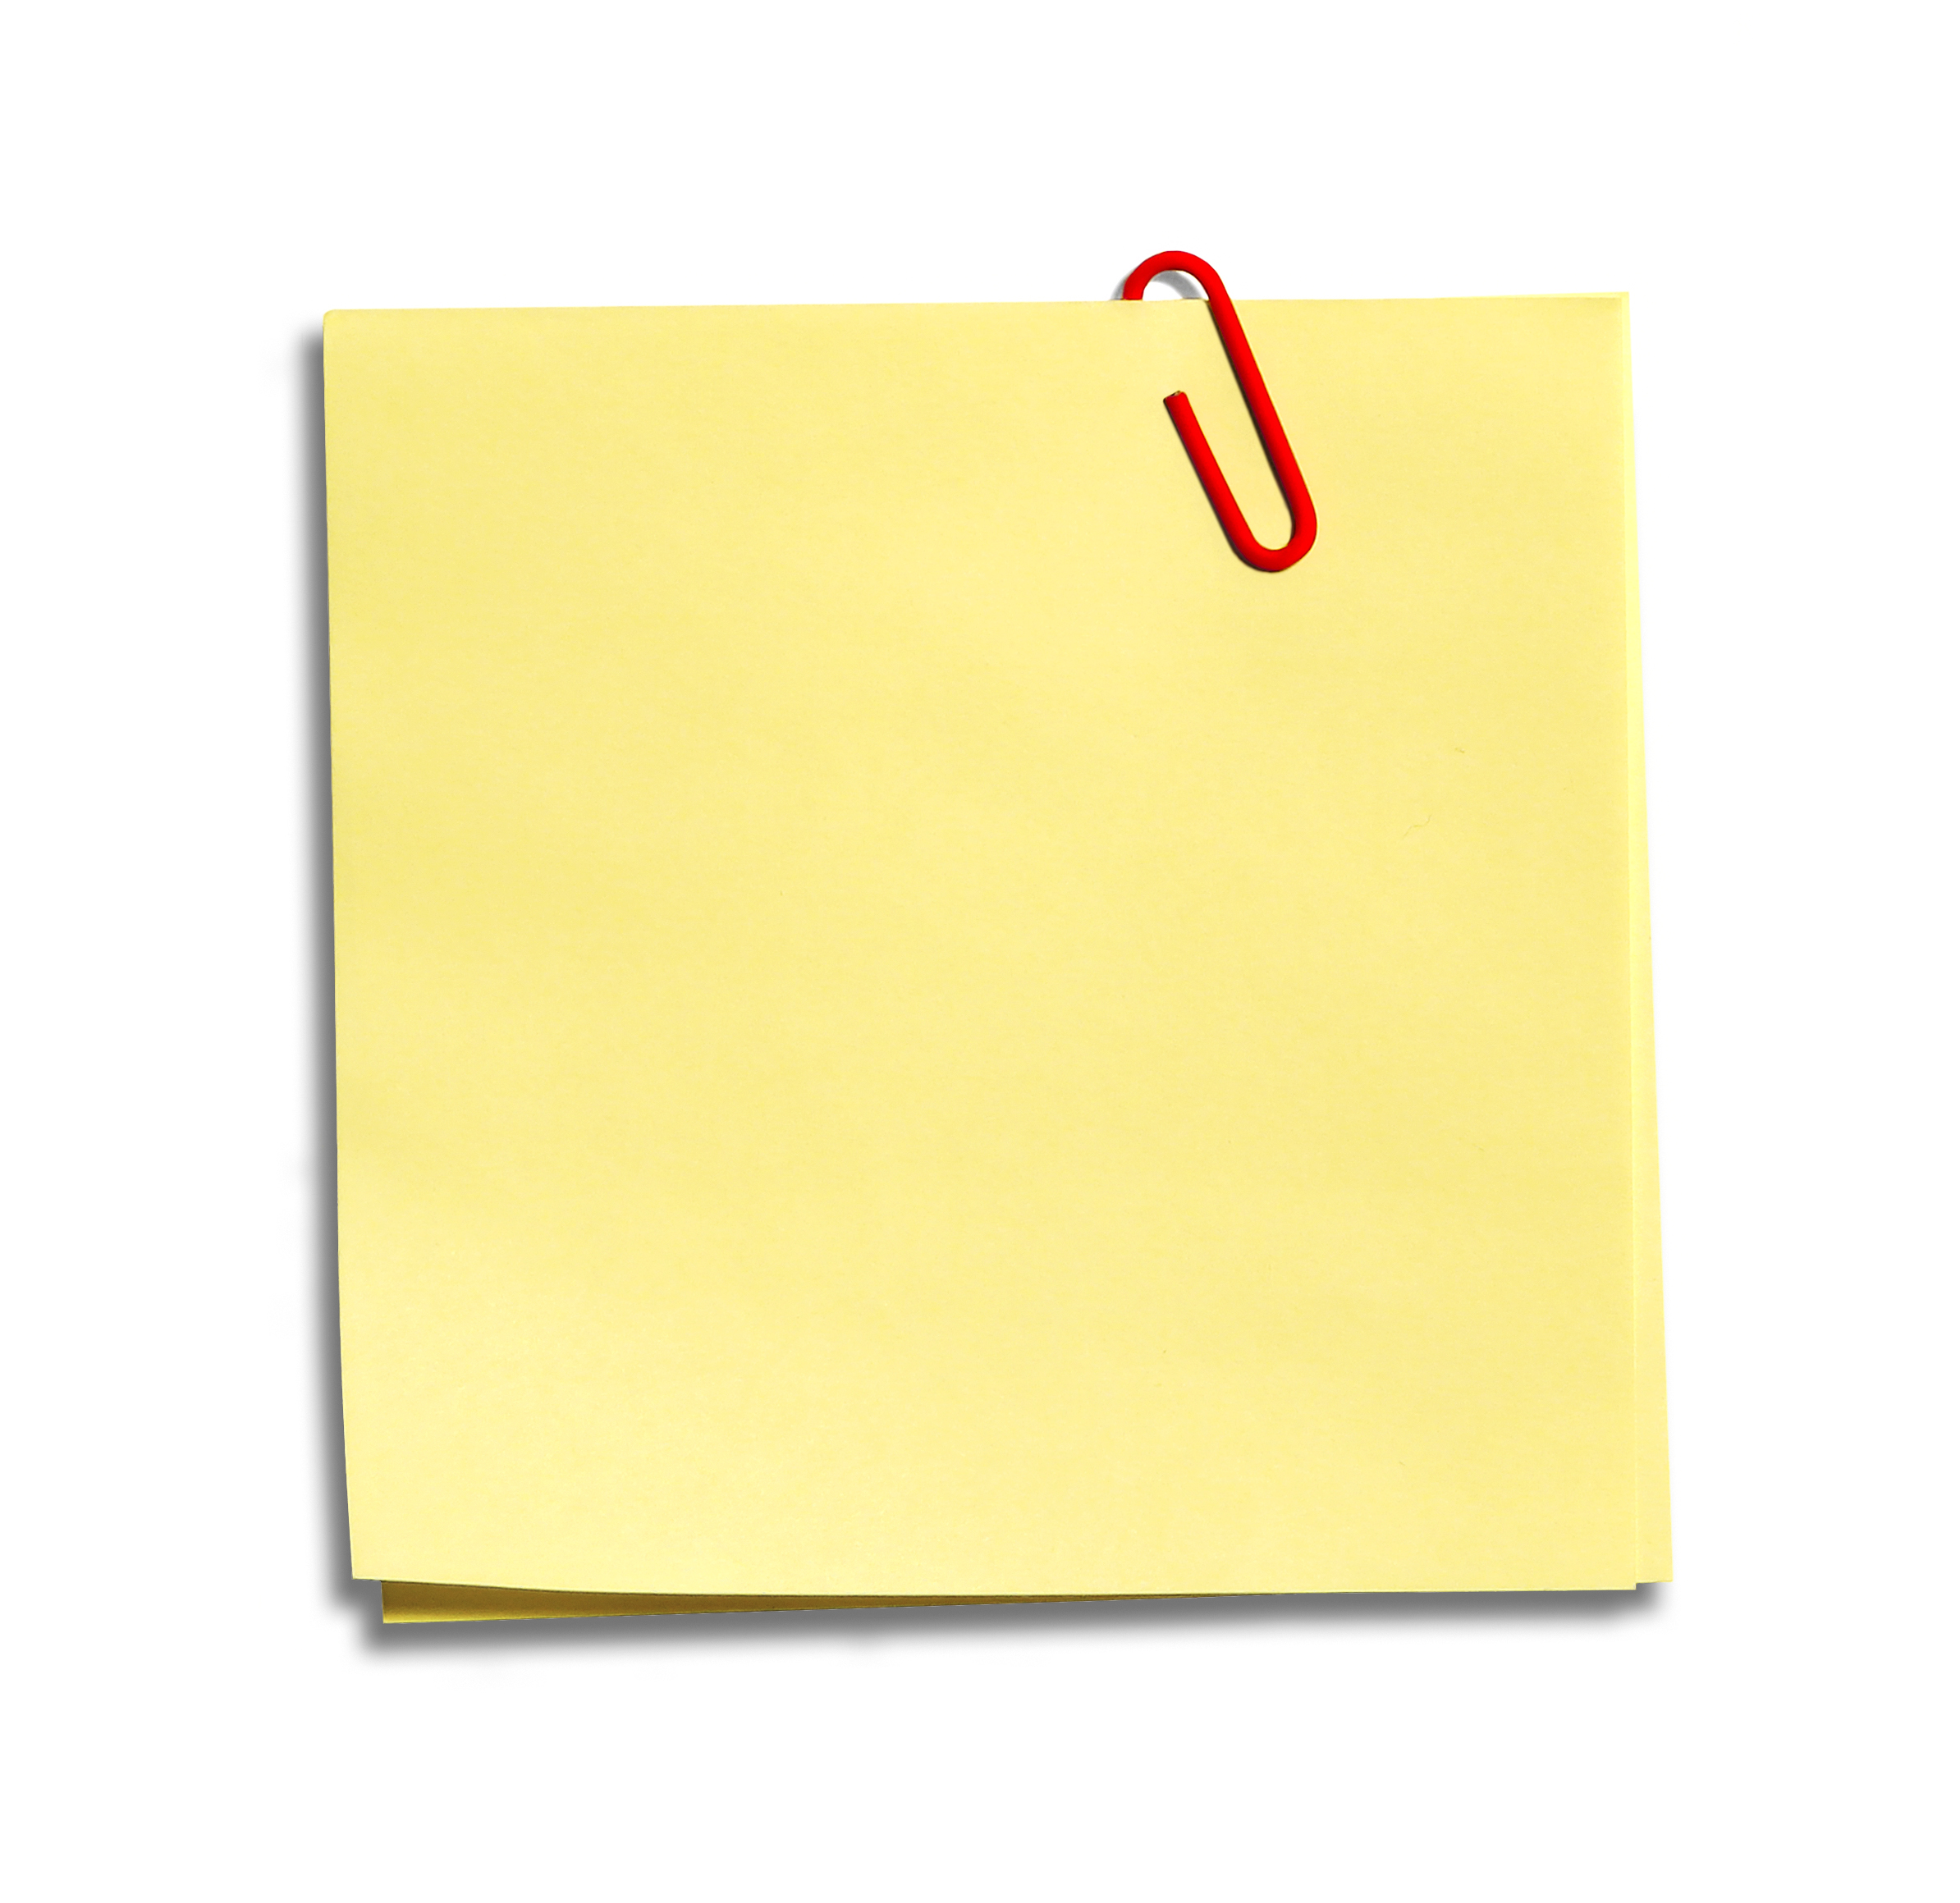 Post It Note Png   Clipart Best